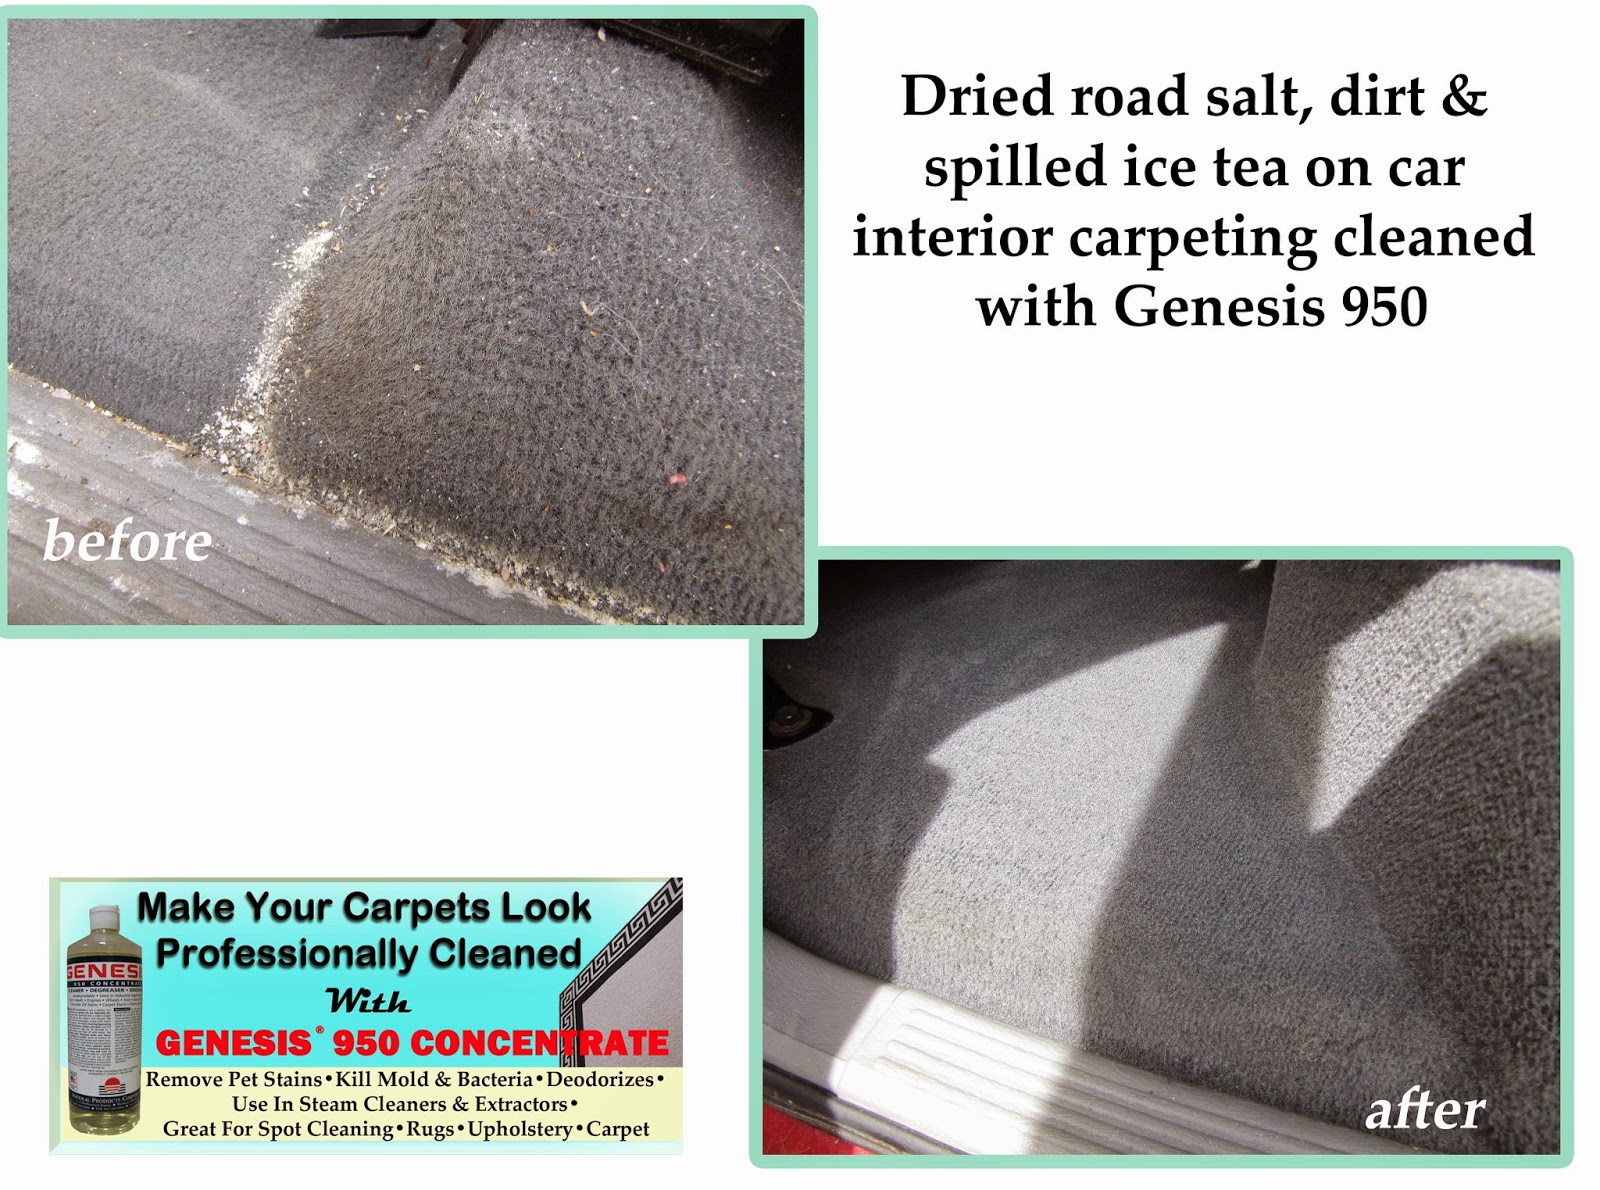 Best Carpet Cleaner And Stain Remover Genesis 950 The Best All Purpose Cleaner